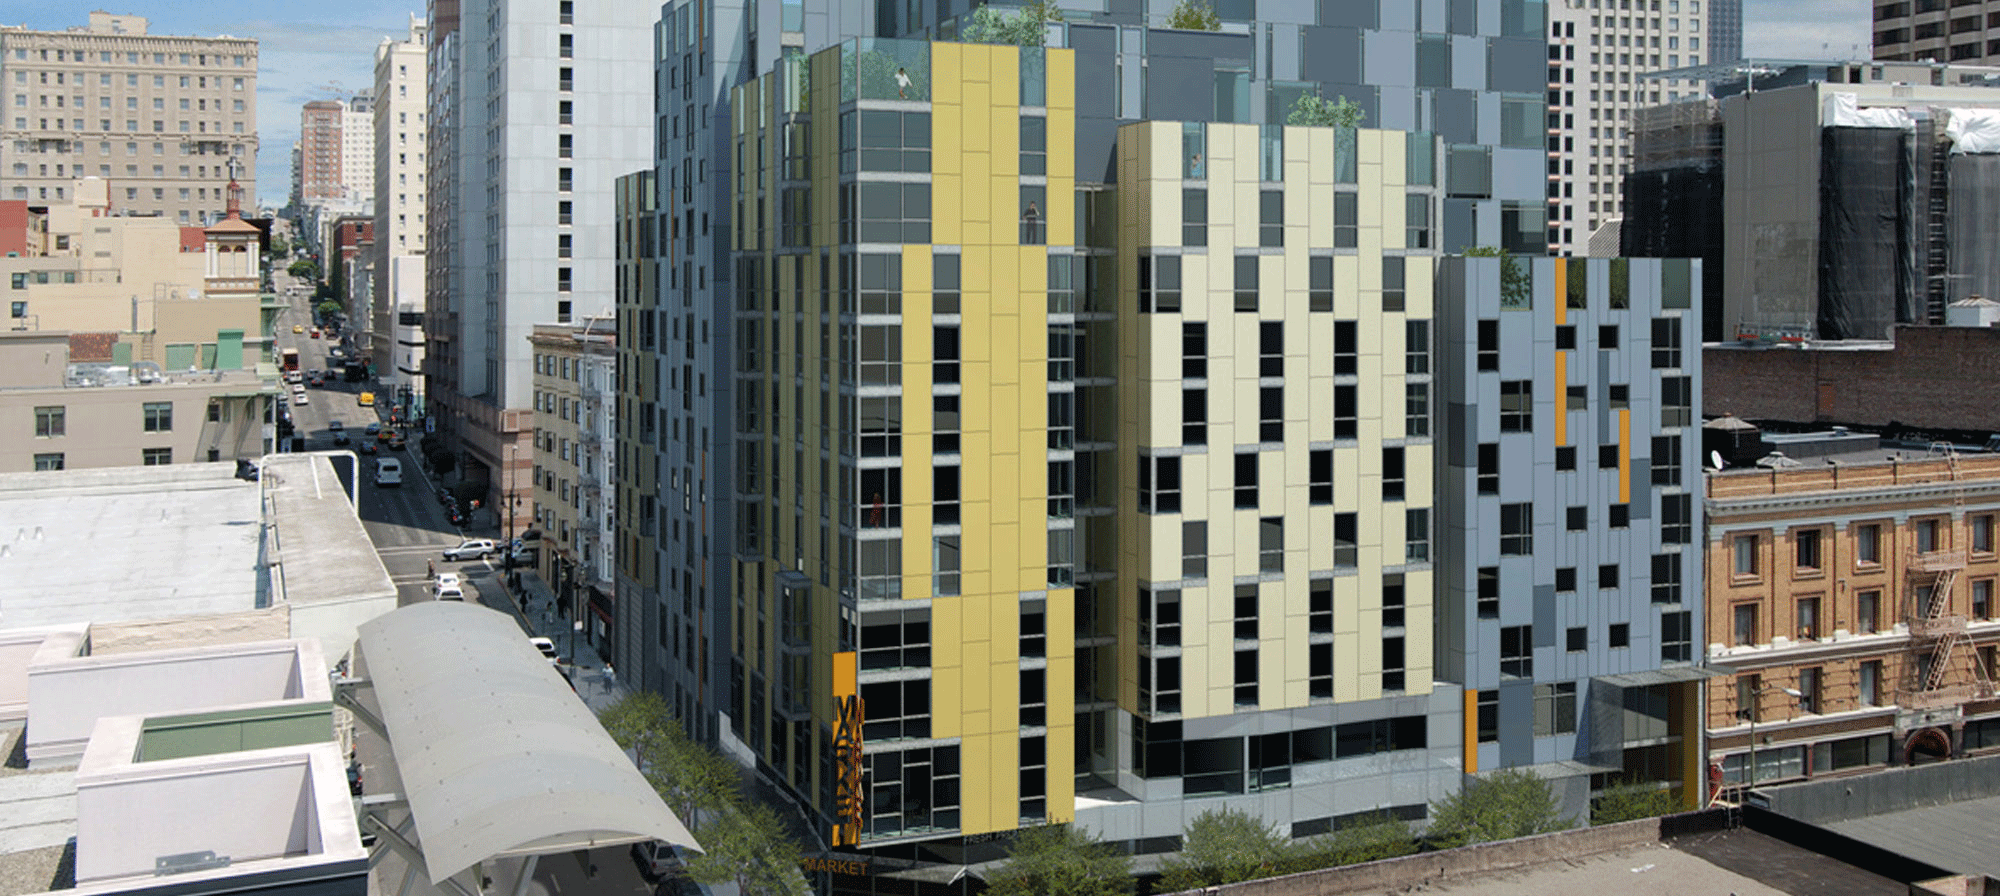 Eddy and Taylor family housing in San Francisco (rendering)